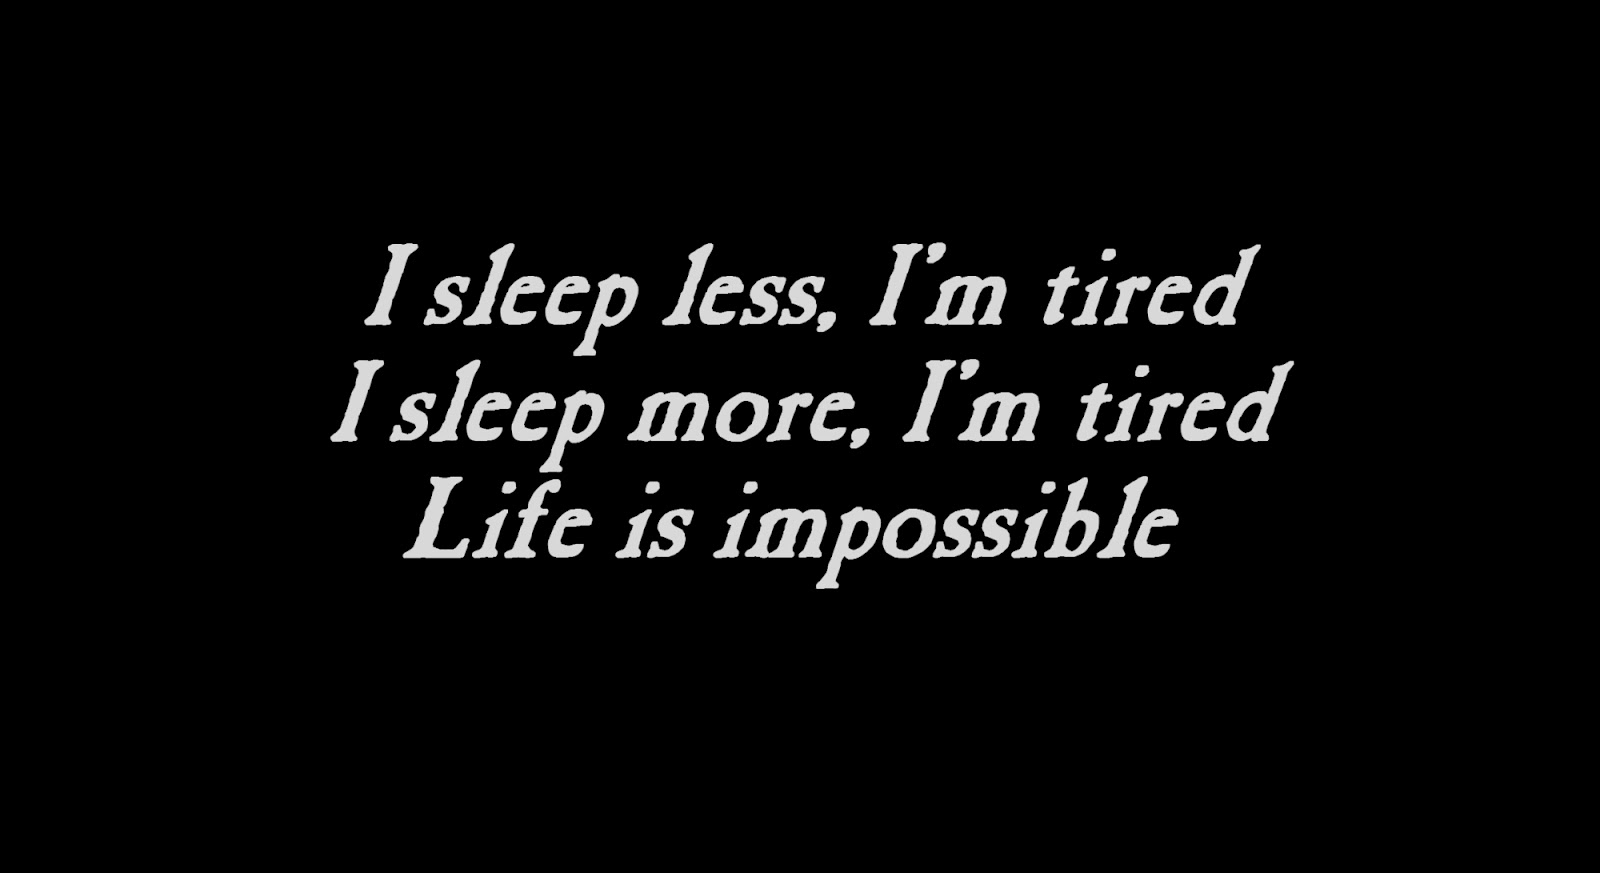 I sleep less, I'm tired I sleep more, I'm tired Life is impossible